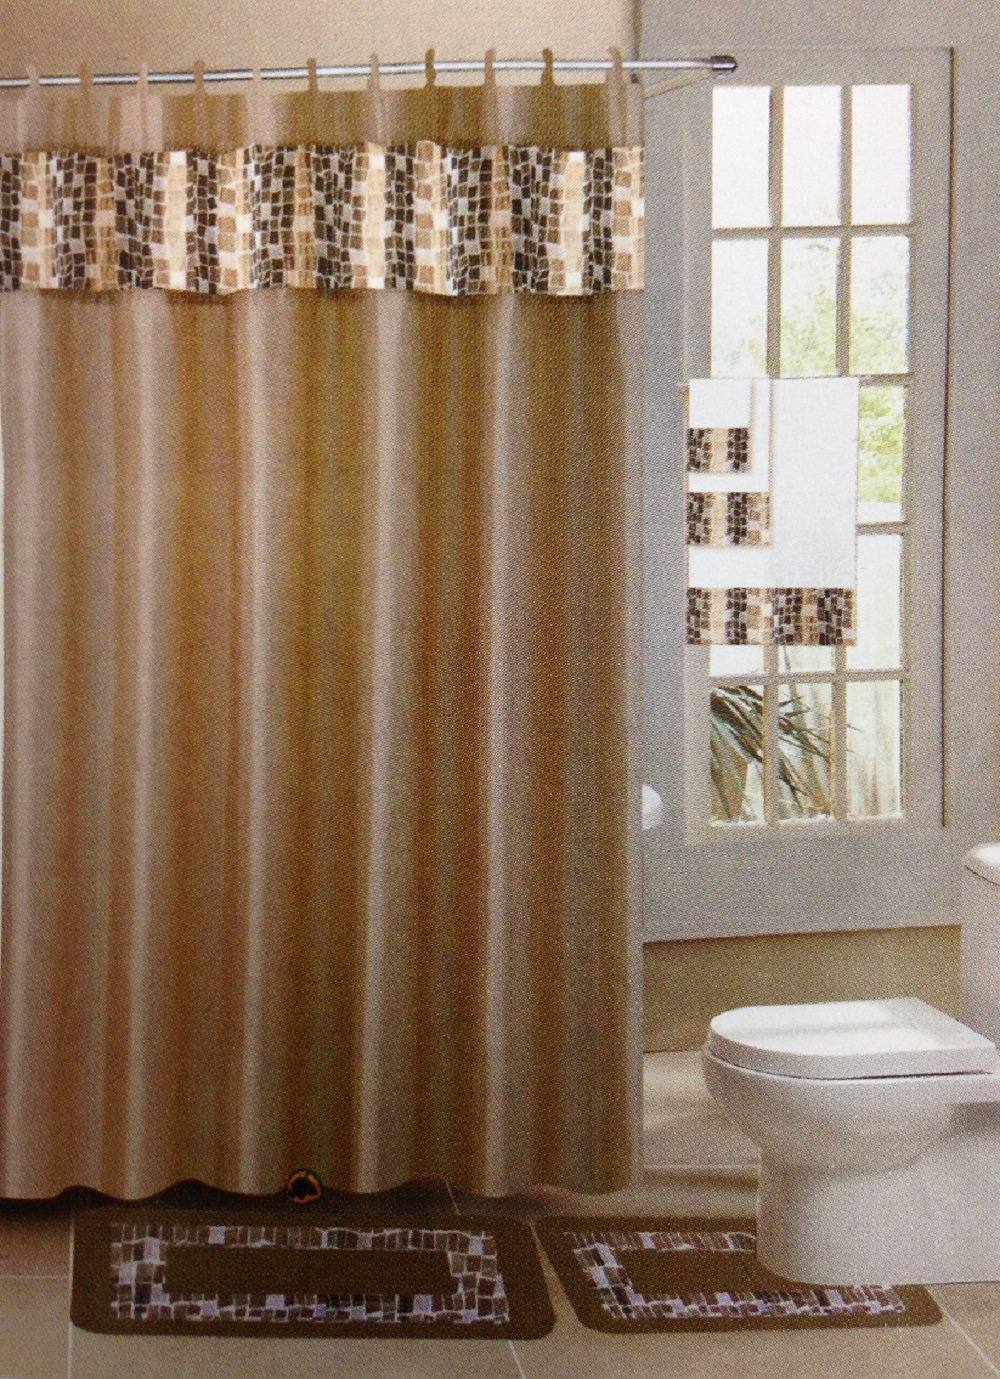 Mosaic Gold Taupe 15 Piece Bathroom Accessory Set 2 Bath Mats Shower Curtain 12 Fabric Covered Rings